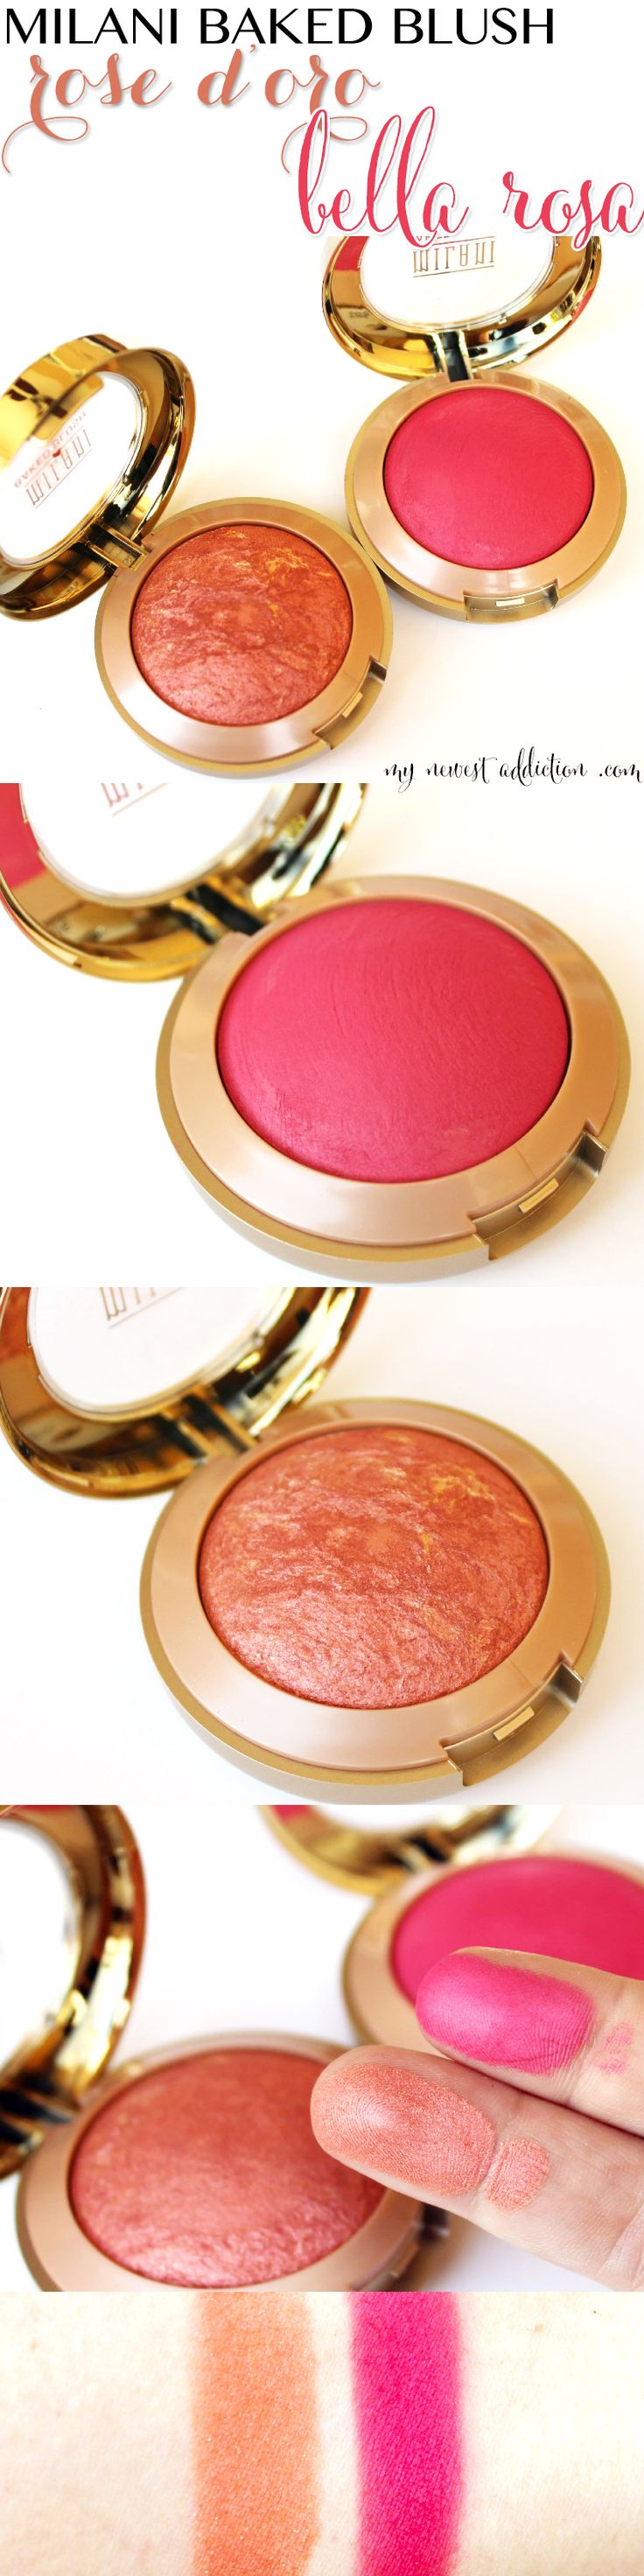 Milani Cosmetics Baked Blush in Rose D'Oro and Bella Rosa review and swatches - My Newest Addiction Beauty Blog www.mynewestaddiction.com